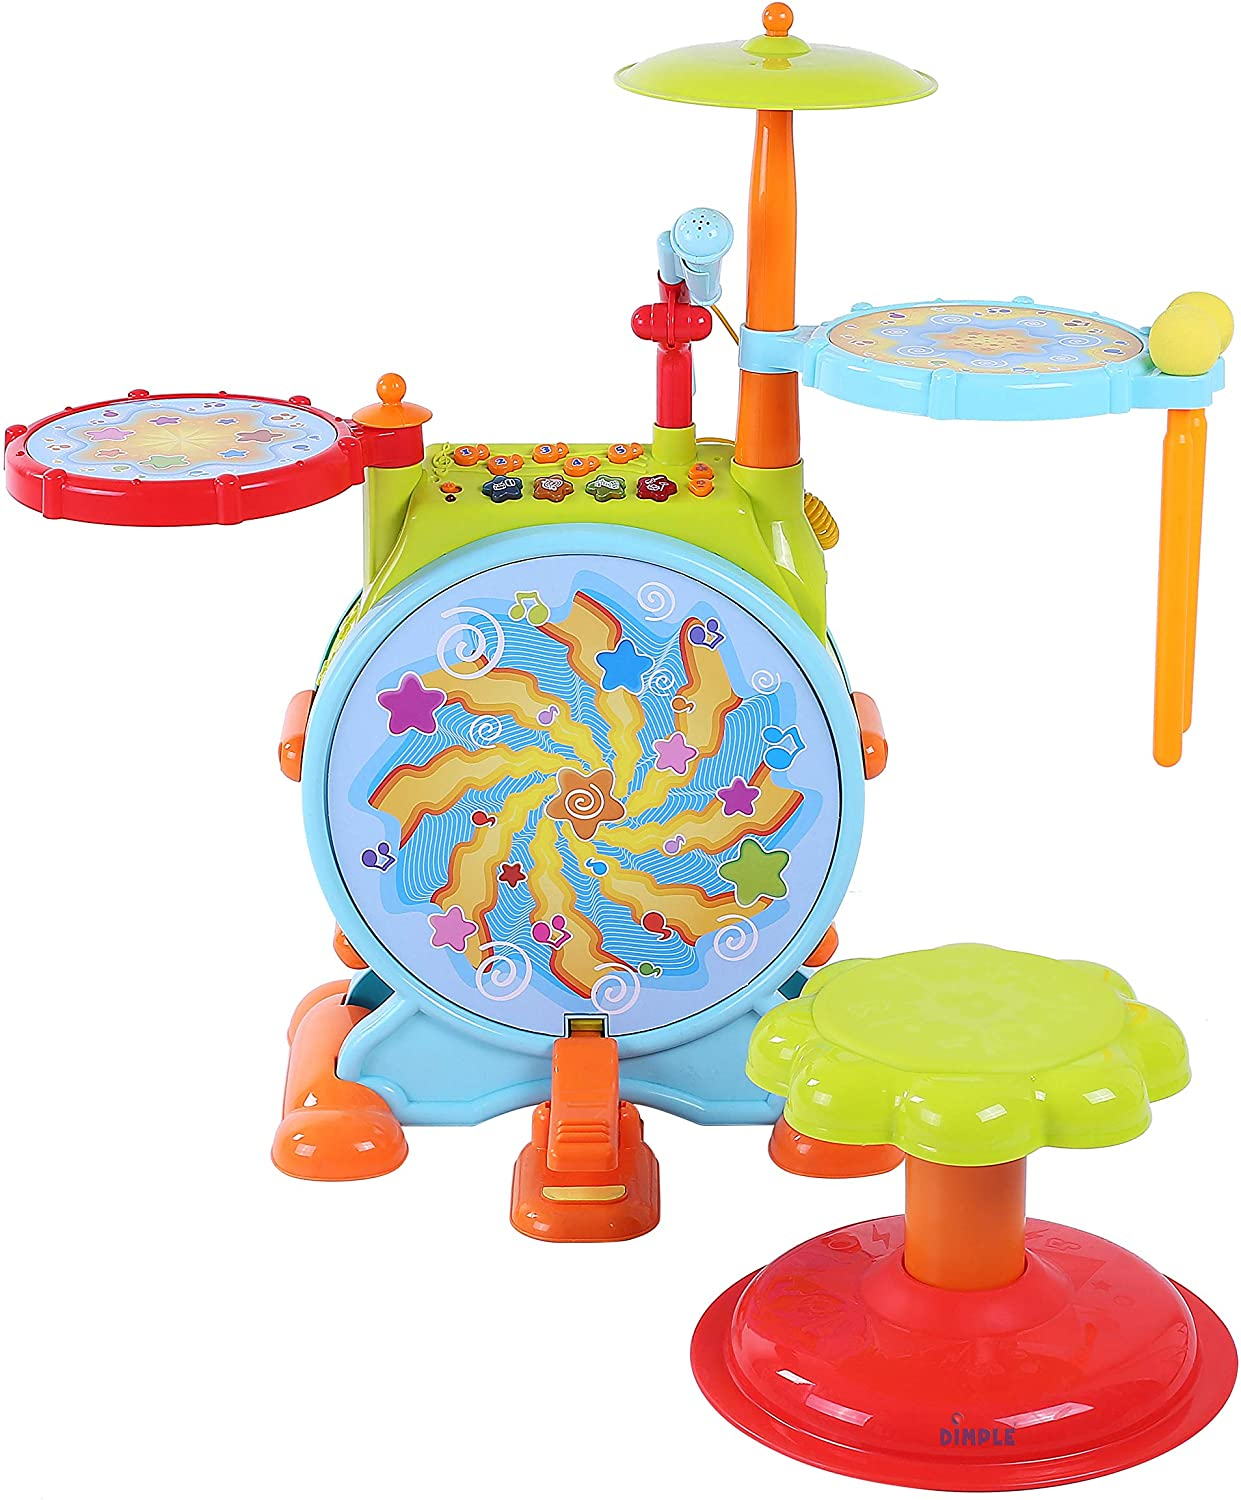 Dimple Electric Best Toddler Drum Set for Kids